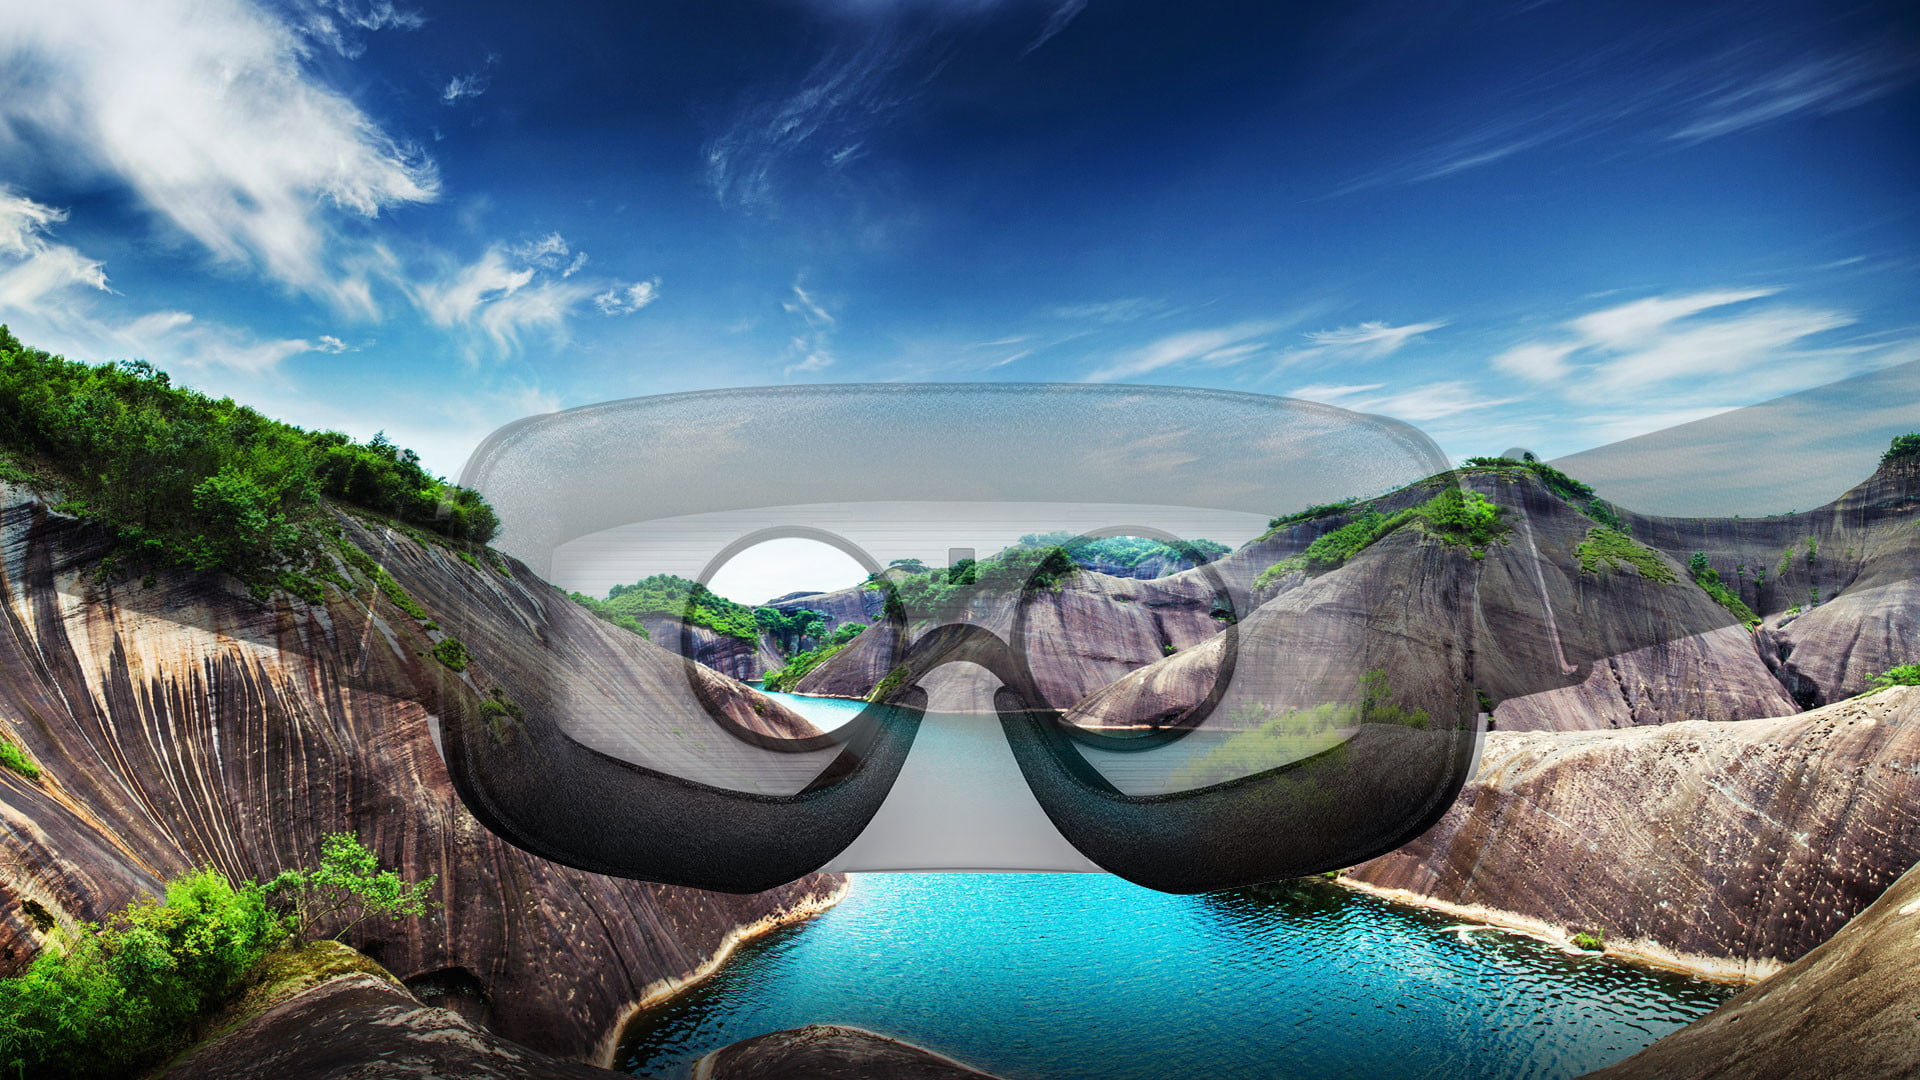 The Best VR Apps for Travel | Discovery VR, Boulevard, and